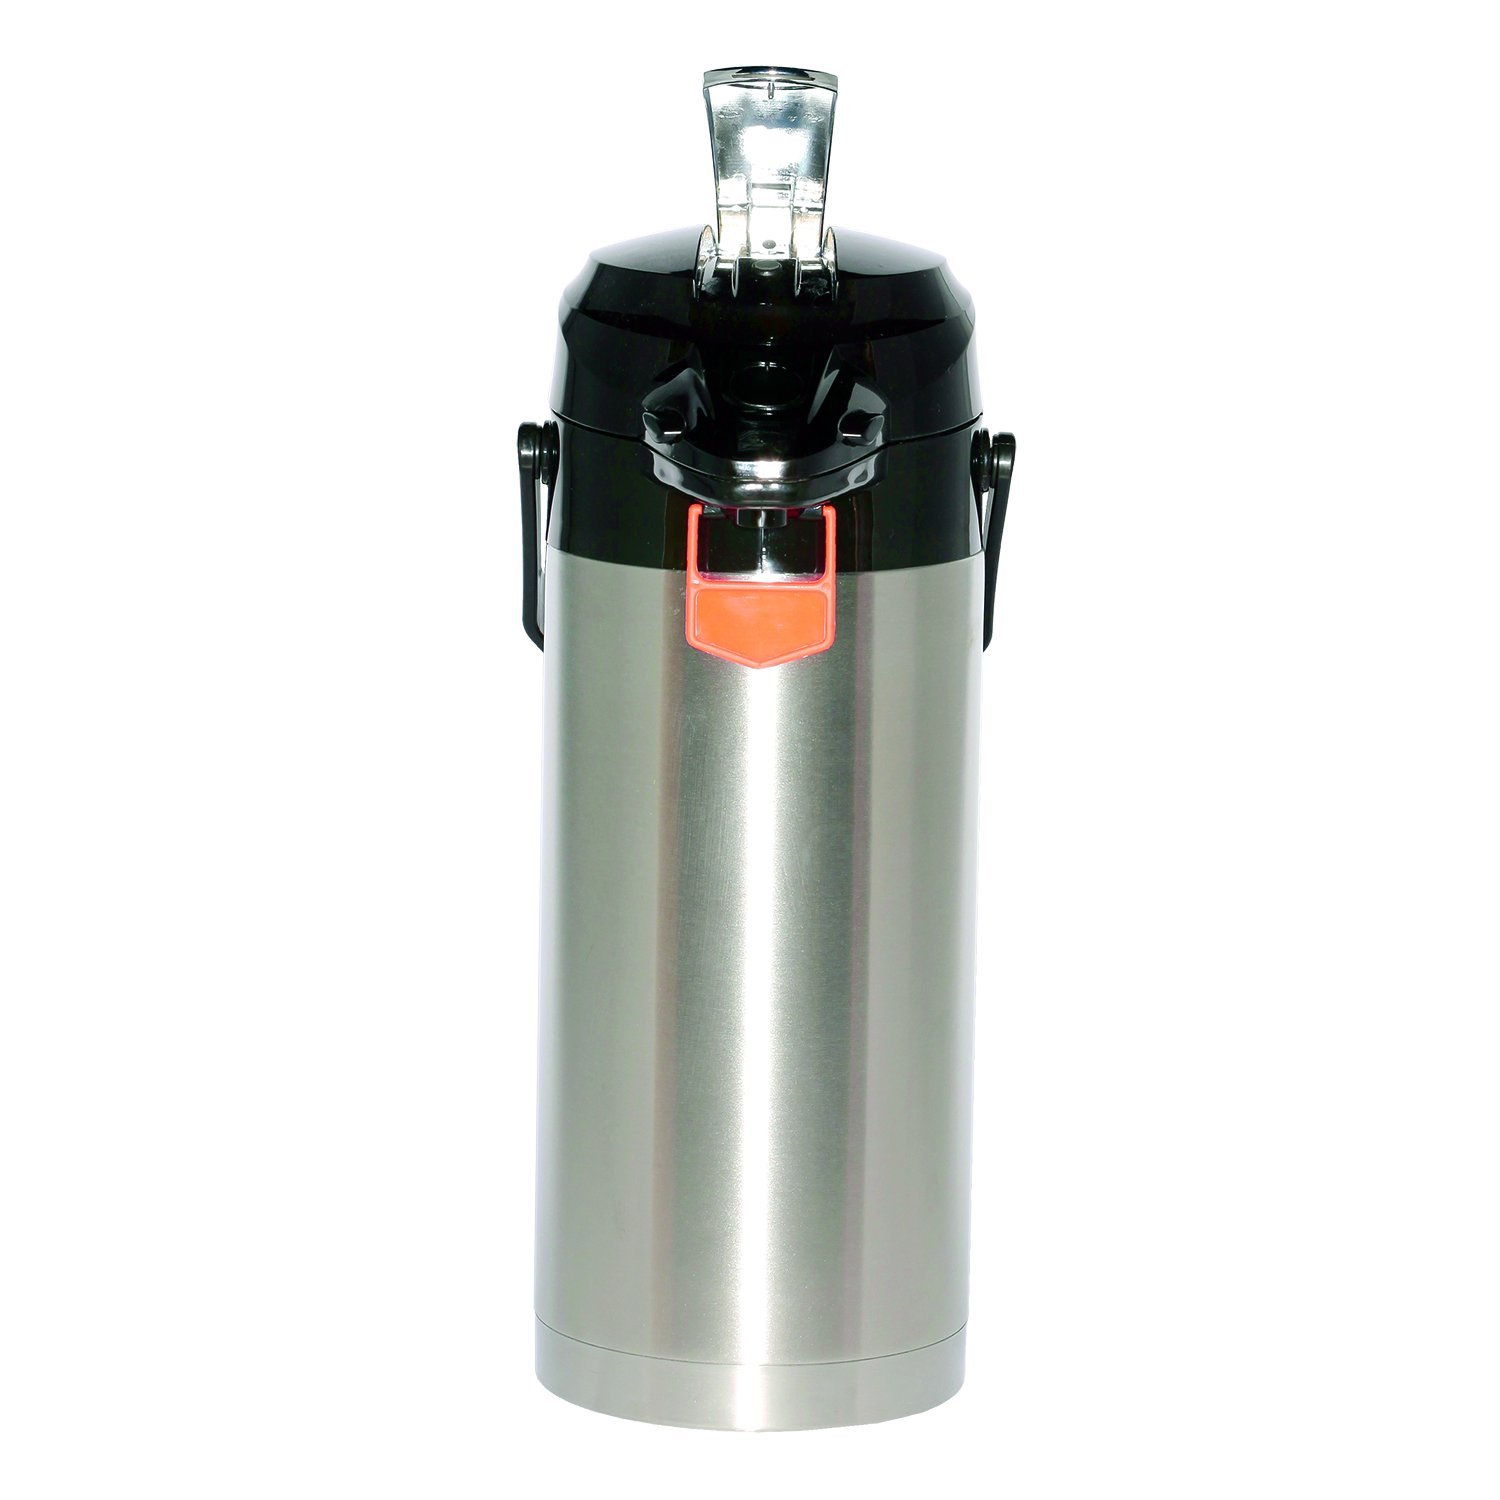 Service Ideas ENALS30S Airpot with Lever, Stainless Steel Lined NSF Listed, 3.0 L